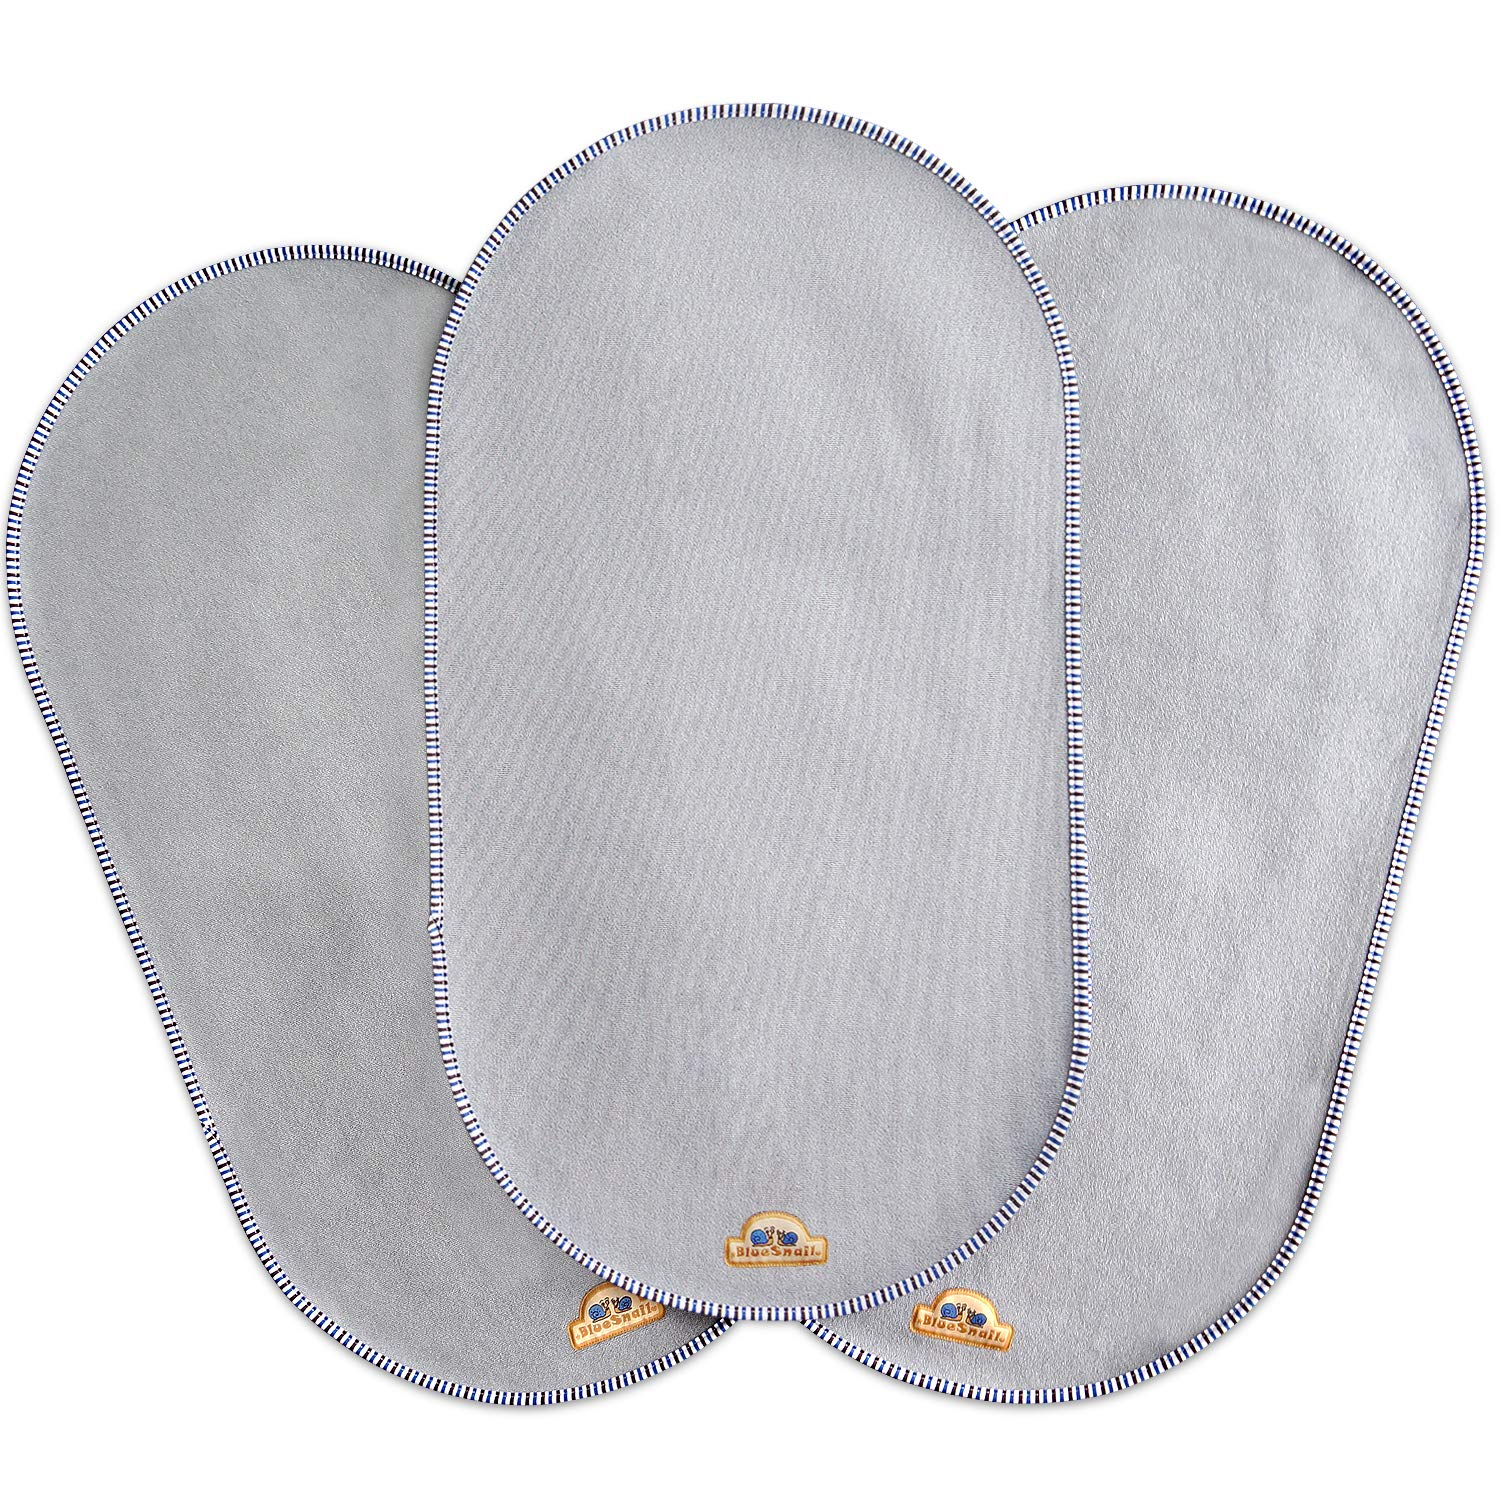 BlueSnail Waterproof Changing Pad Liners 3 Count (14''X26.5'', Gray) Bassinet Pad Liner by BlueSnail